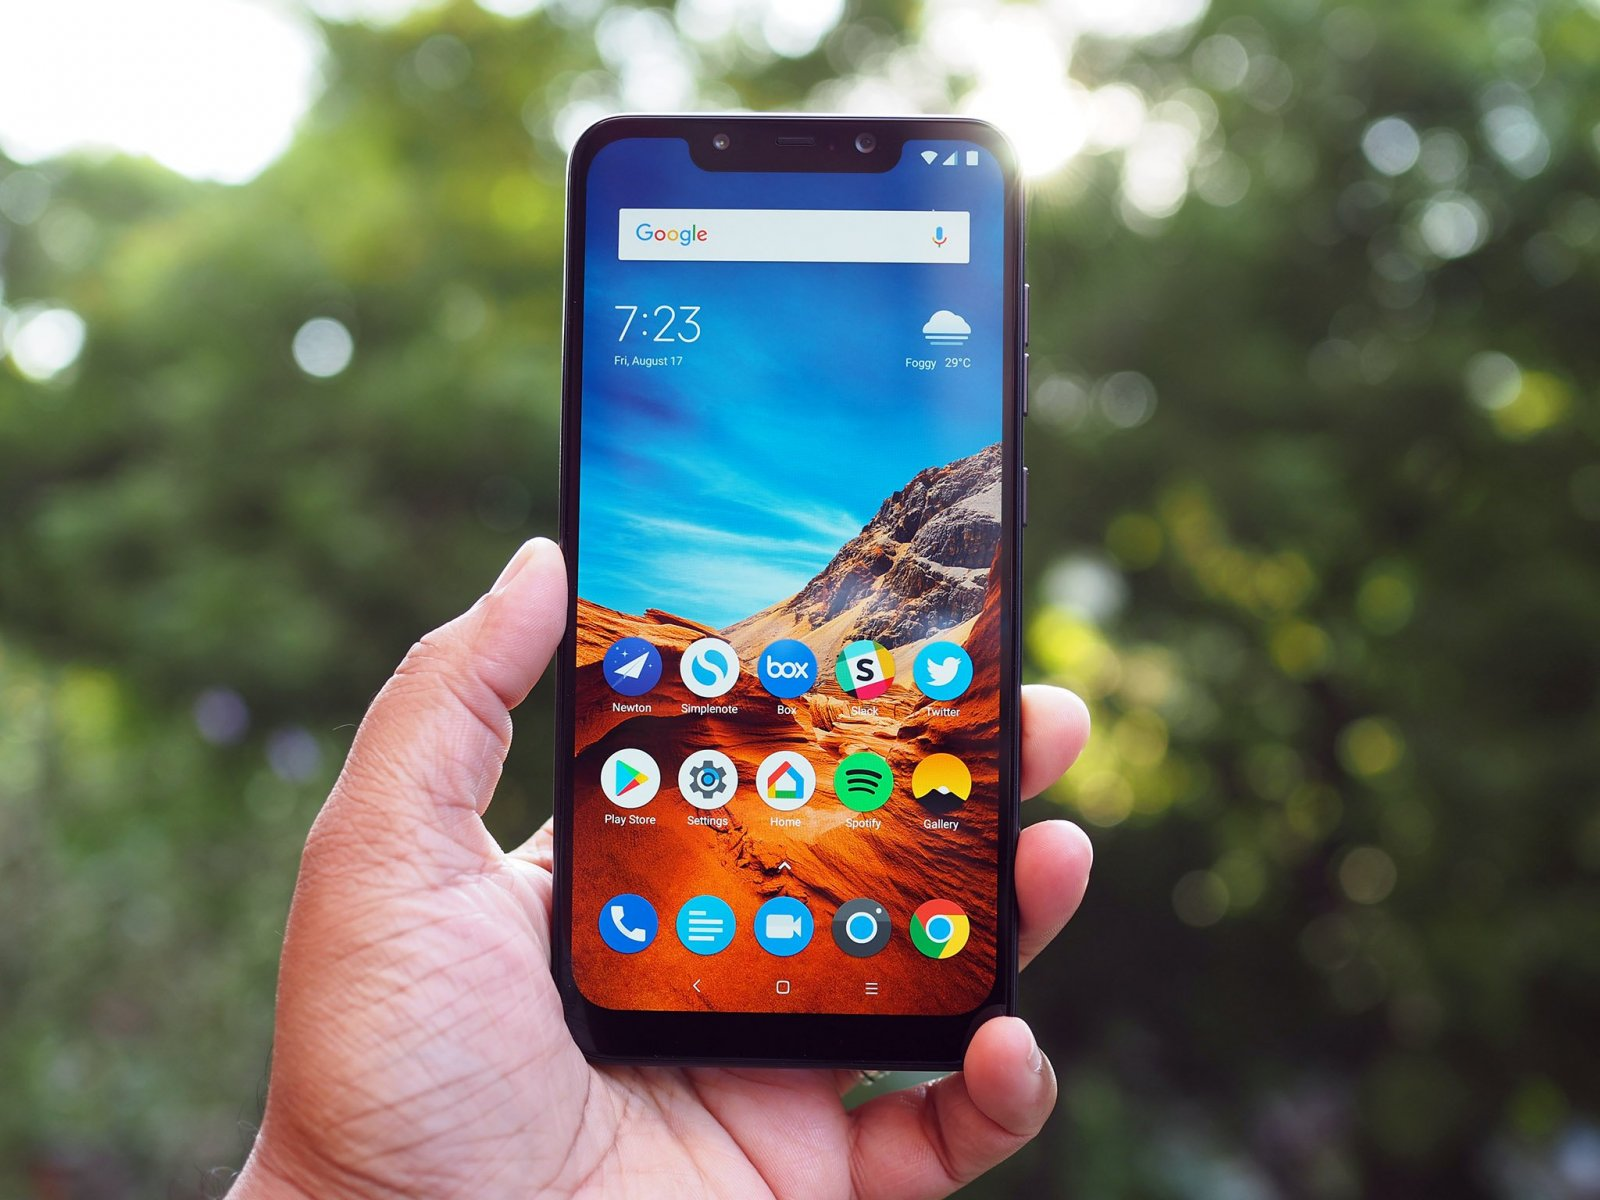 Poco F1 smartphone officially launched! (With SD845, 6GB/64GB